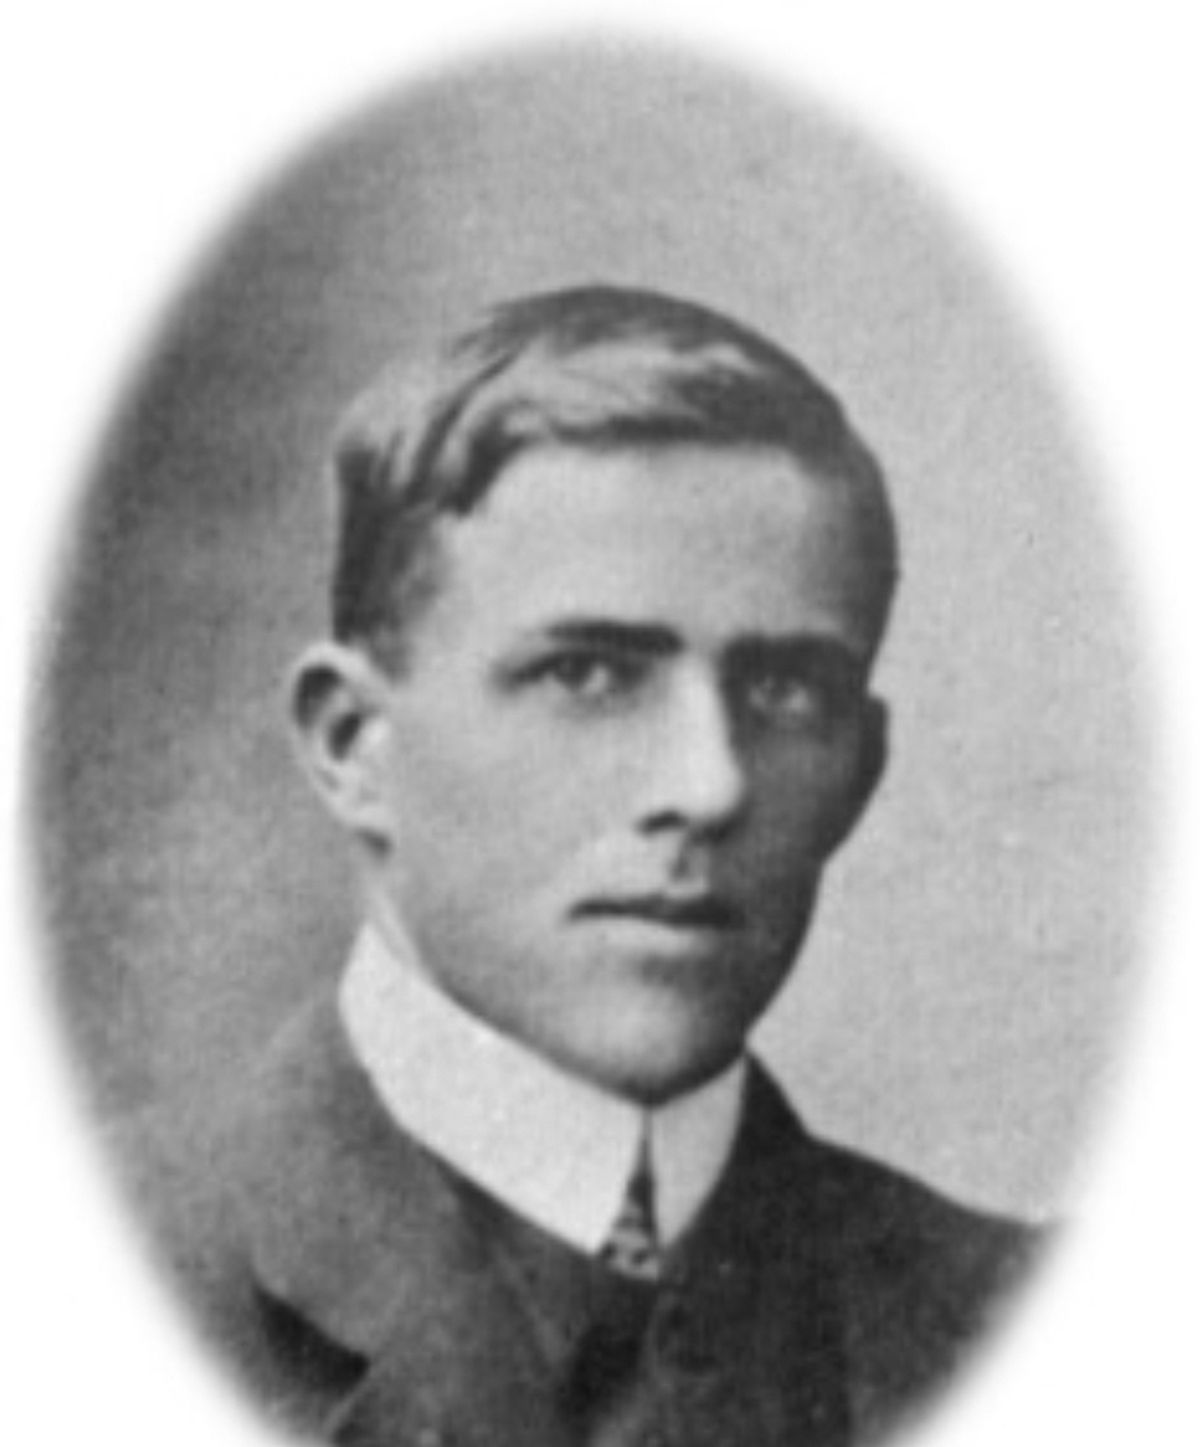 Charlie McMillan died in the Spanish Flu pandemic.